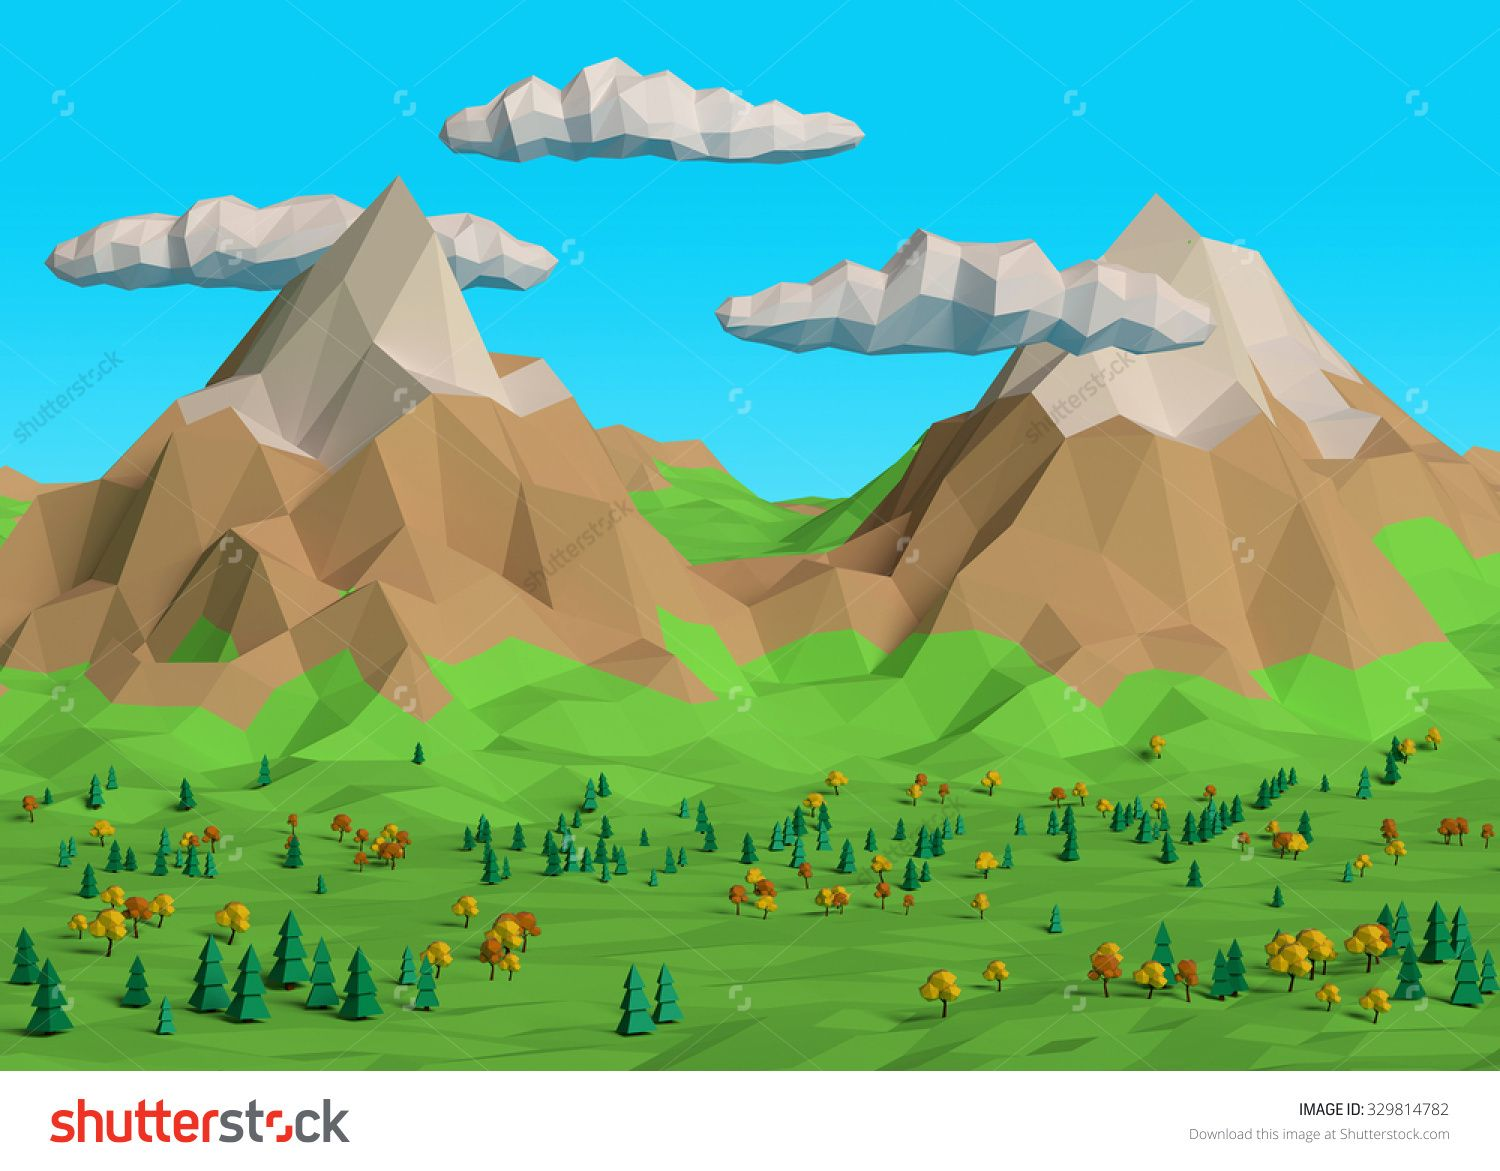 More similar stock images of 3d landscape with fall tree - Low Poly 3d Fall Autumn Mountain Landscape With Trees Clouds Green Grass And